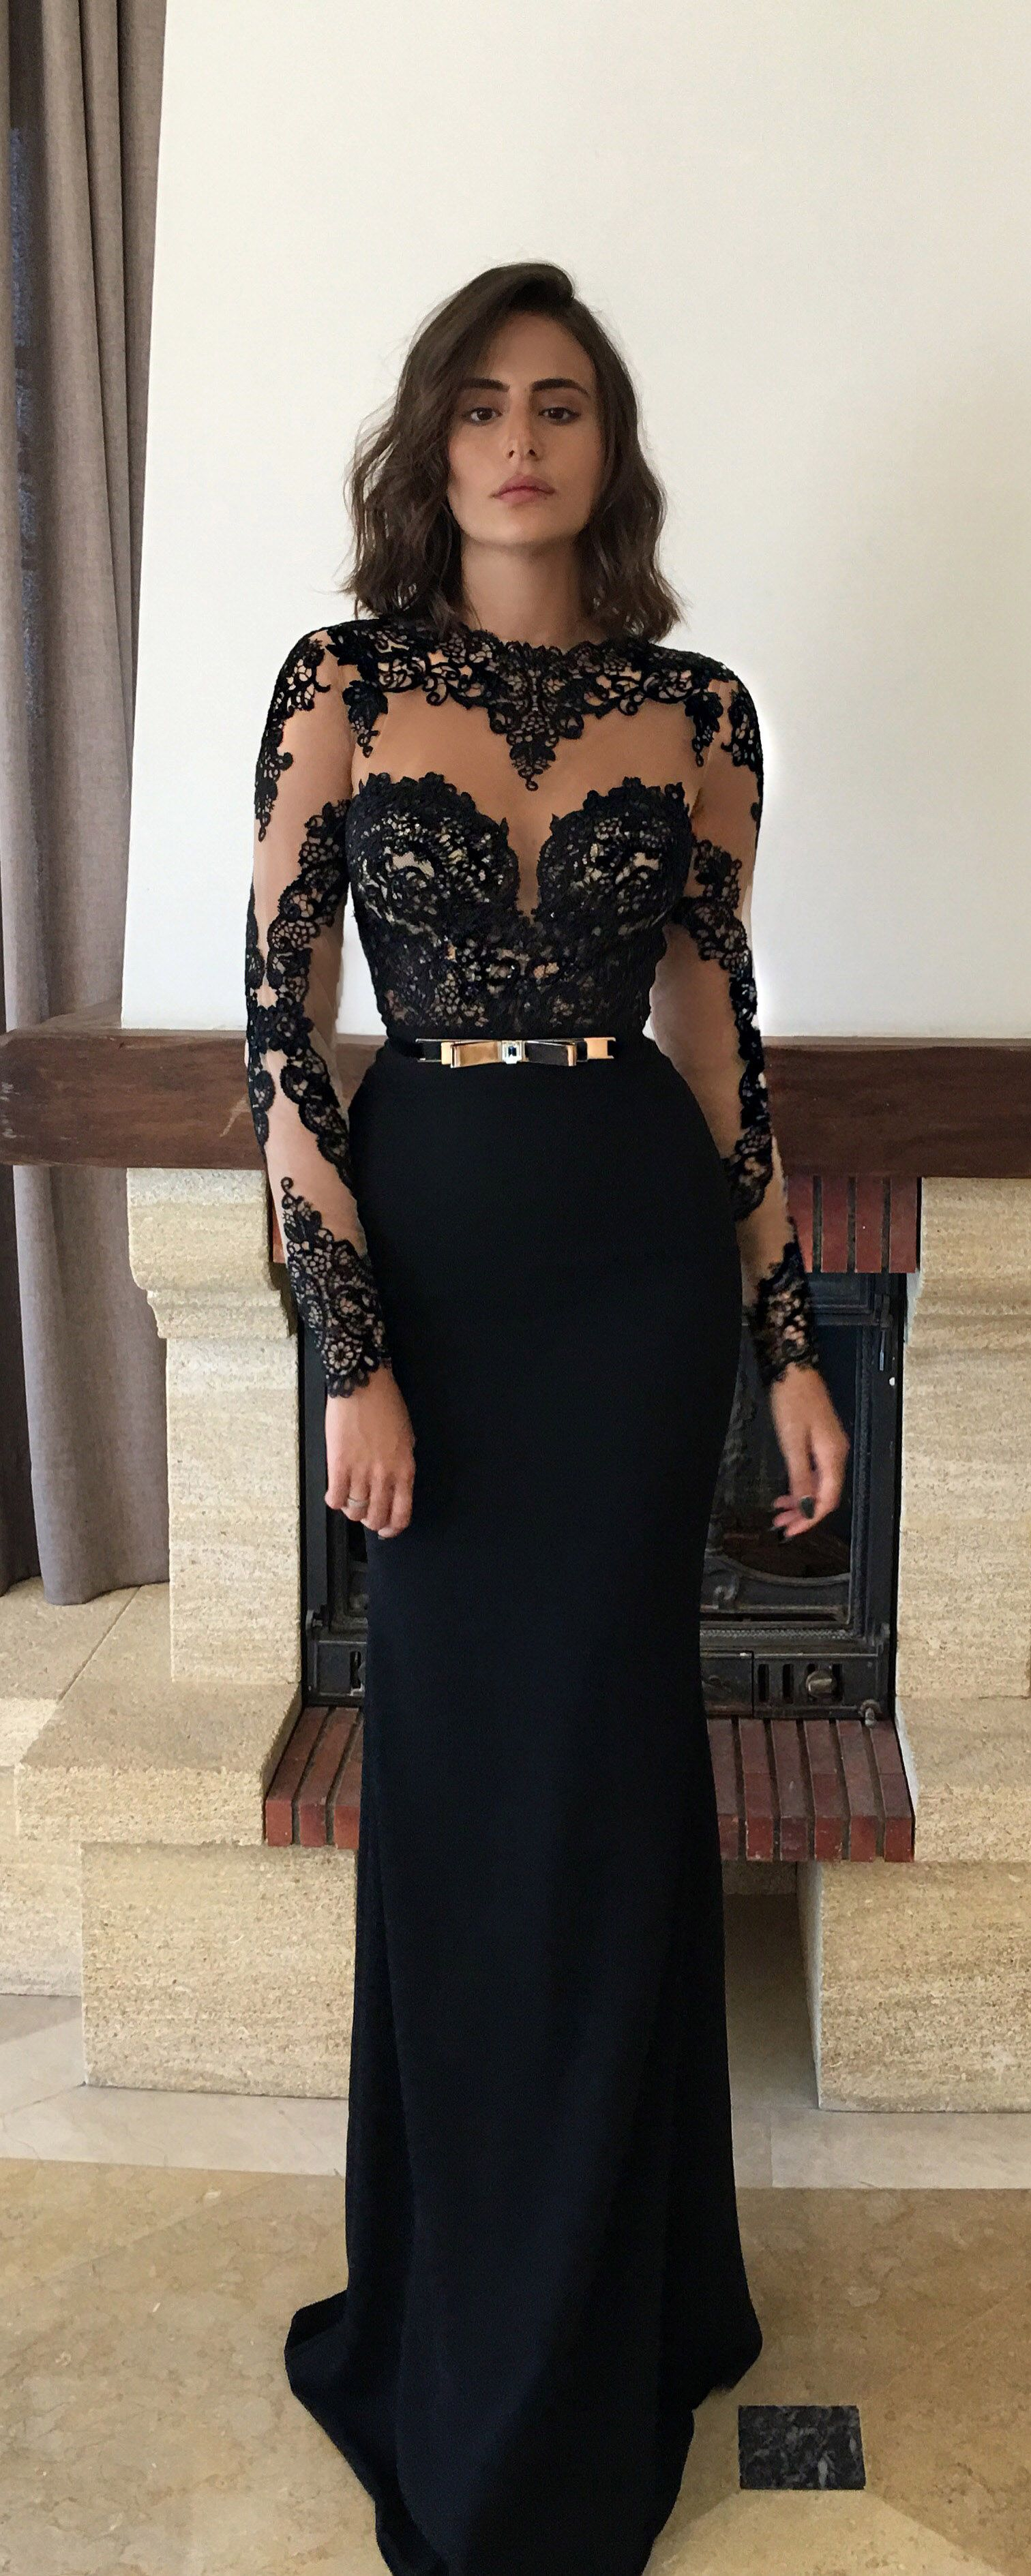 New Limited Edition Couture Evening Wear Line Is Coming Soon Exclusively To Saks In Manhattan And Beverly Hillsat Fifth Avenue